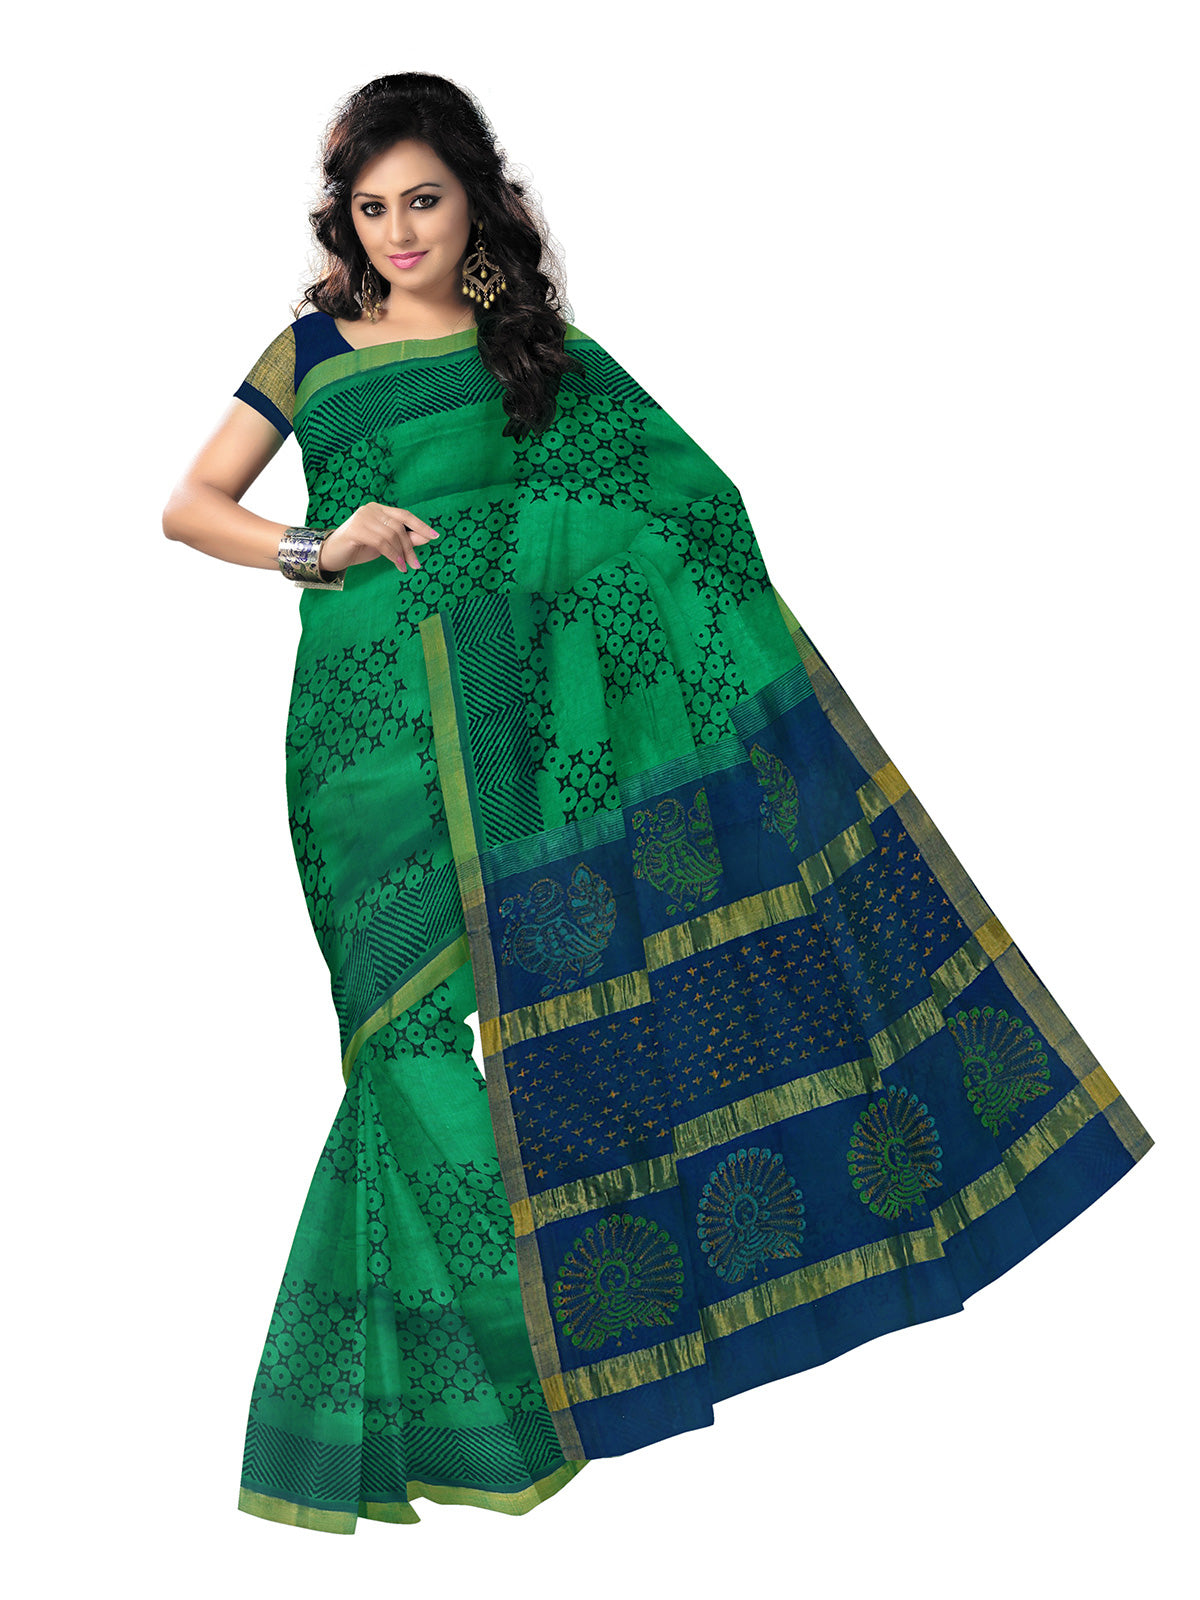 Printed Silk Cotton Saree Green and Blue with Simple Zari border